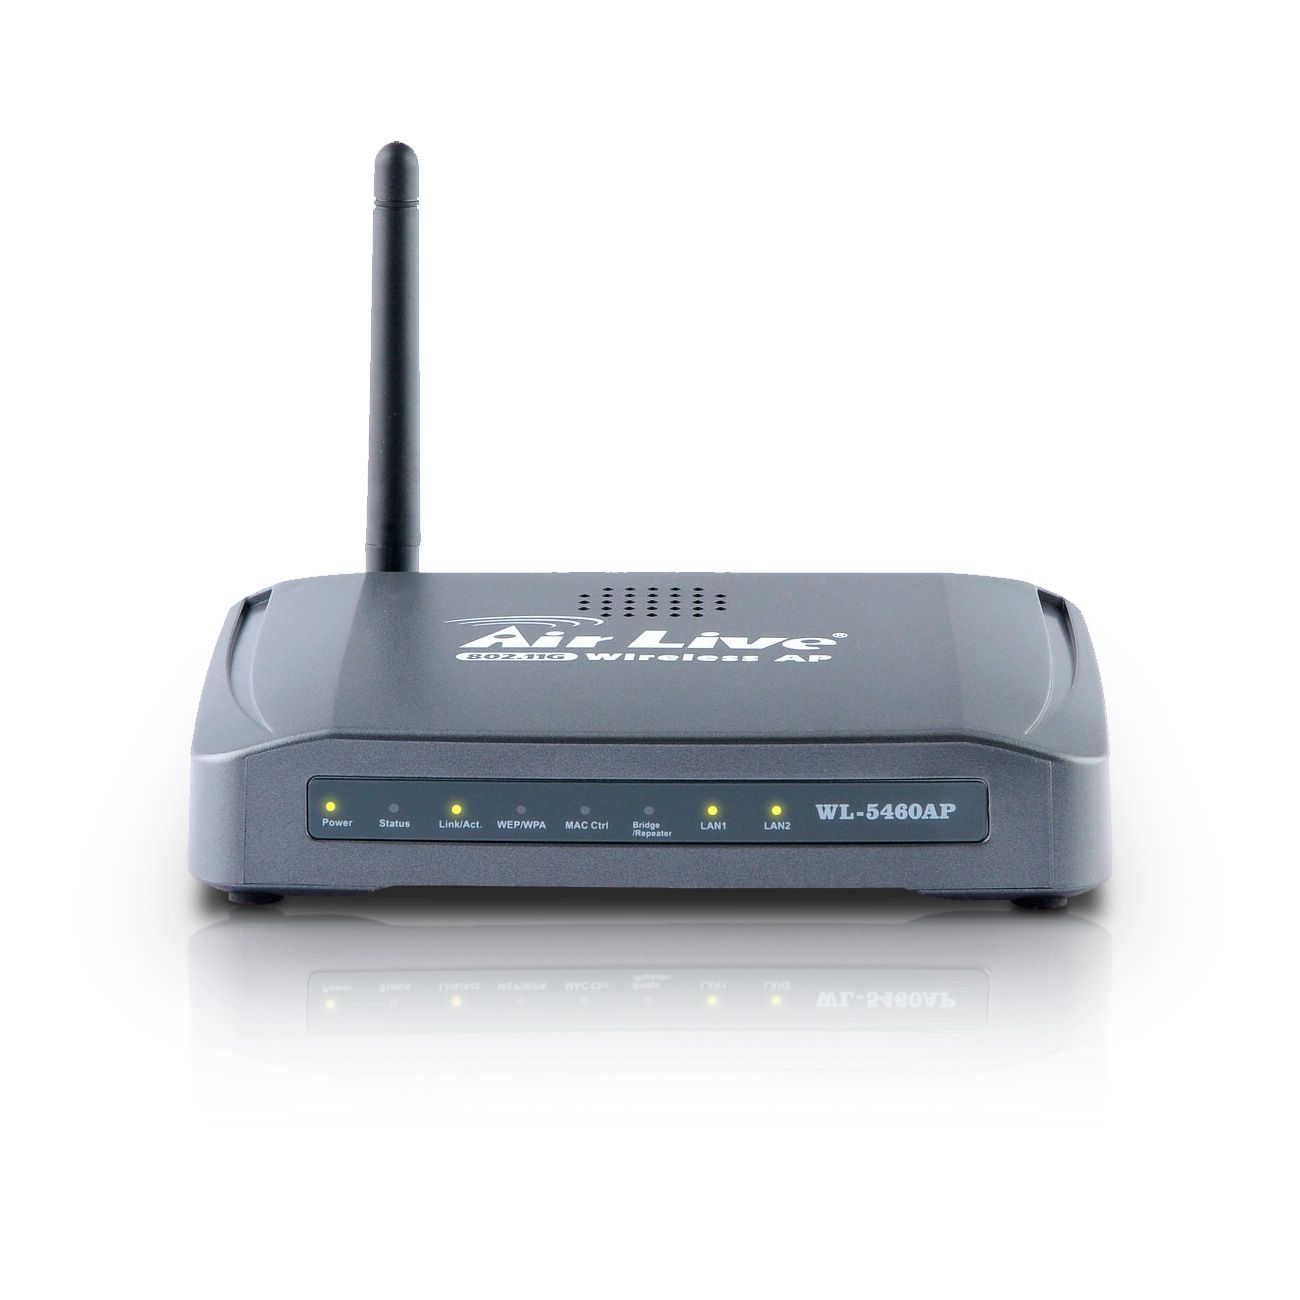 Access point AirLive WL-5460AP v2